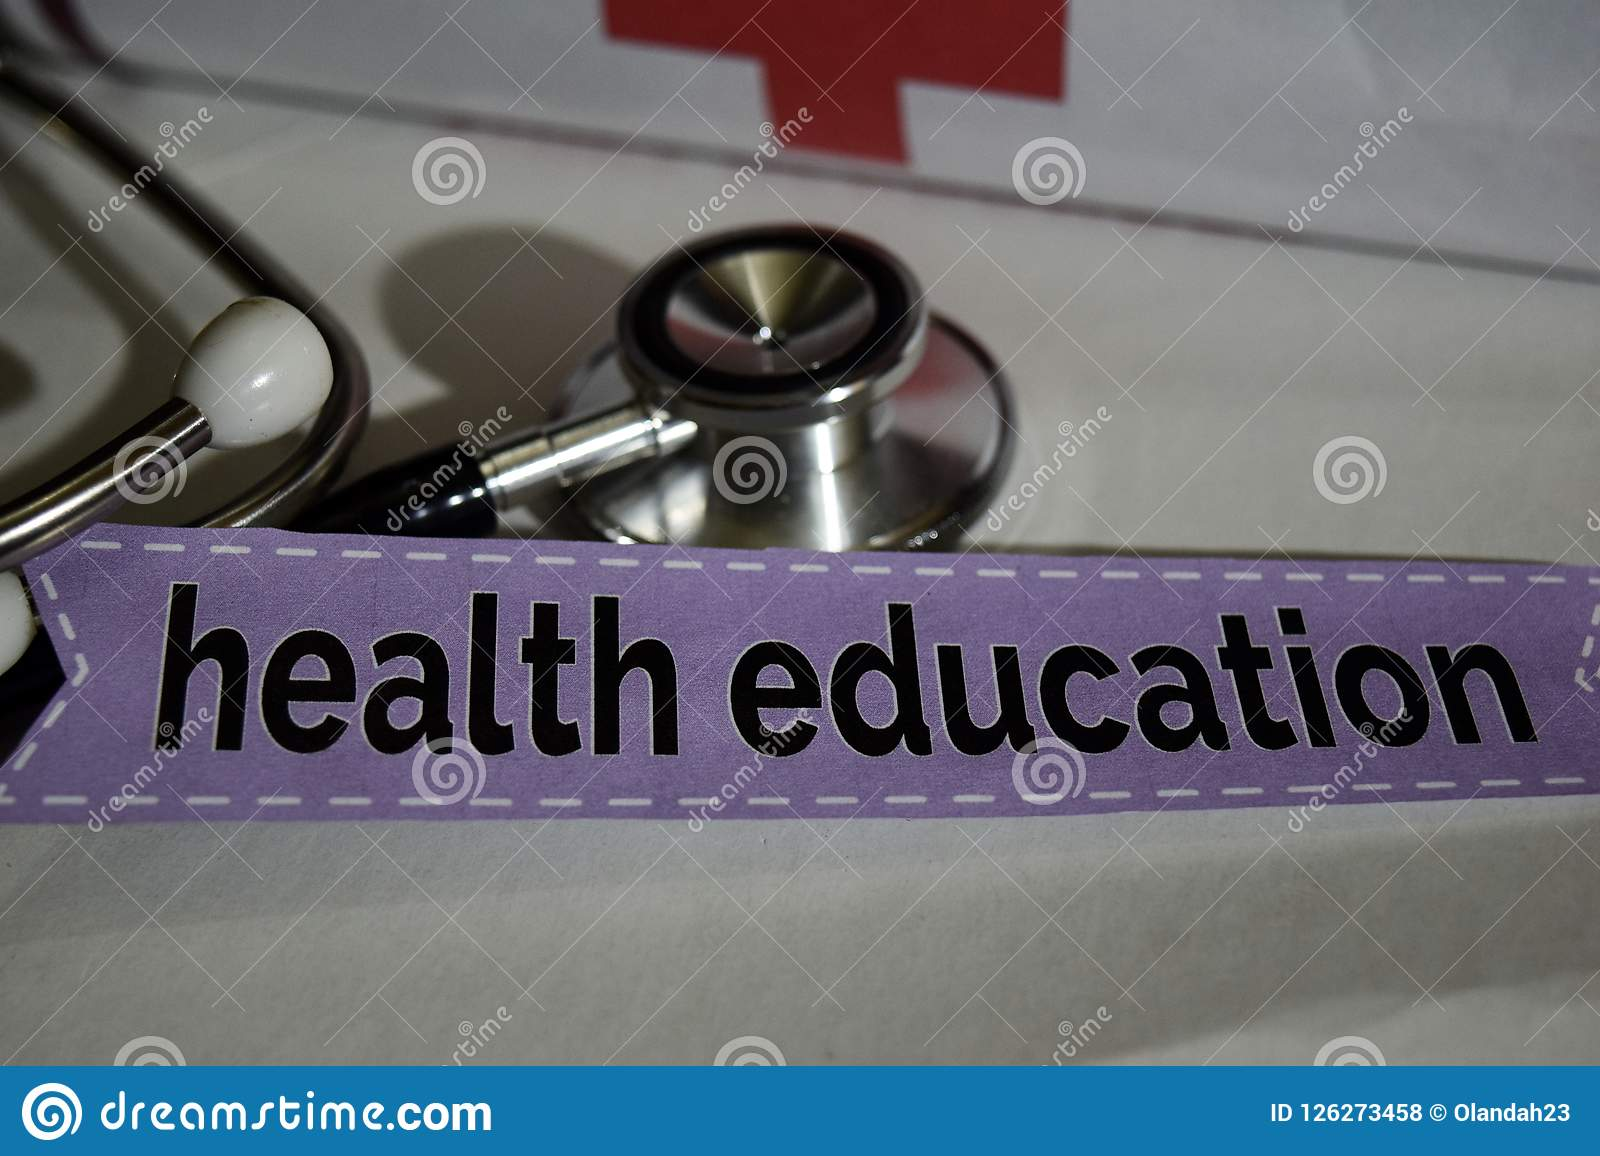 Health education message with stethoscope, health care concept.